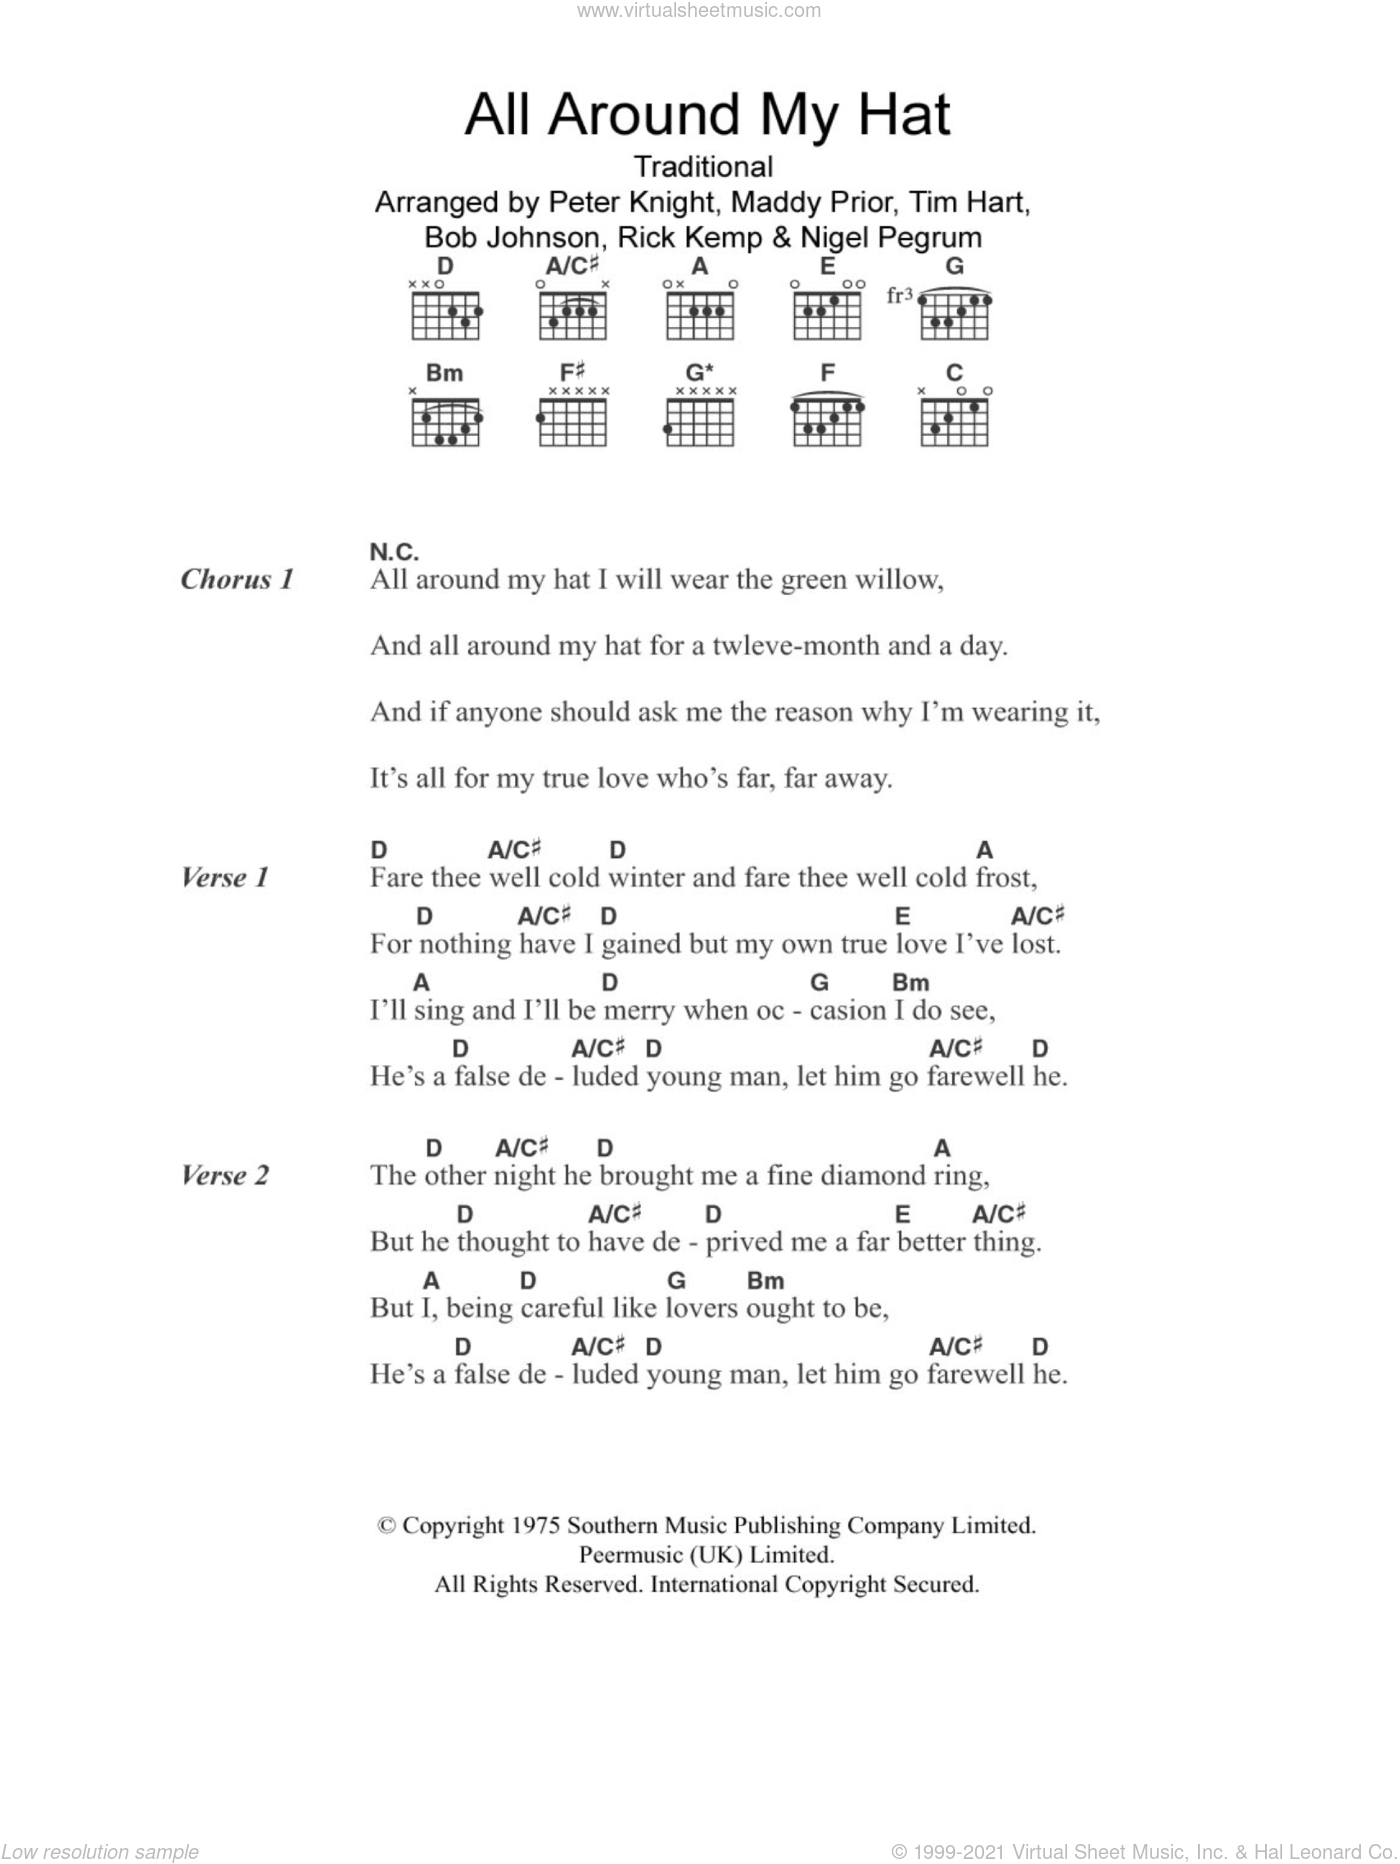 All Around My Hat sheet music for guitar (chords)